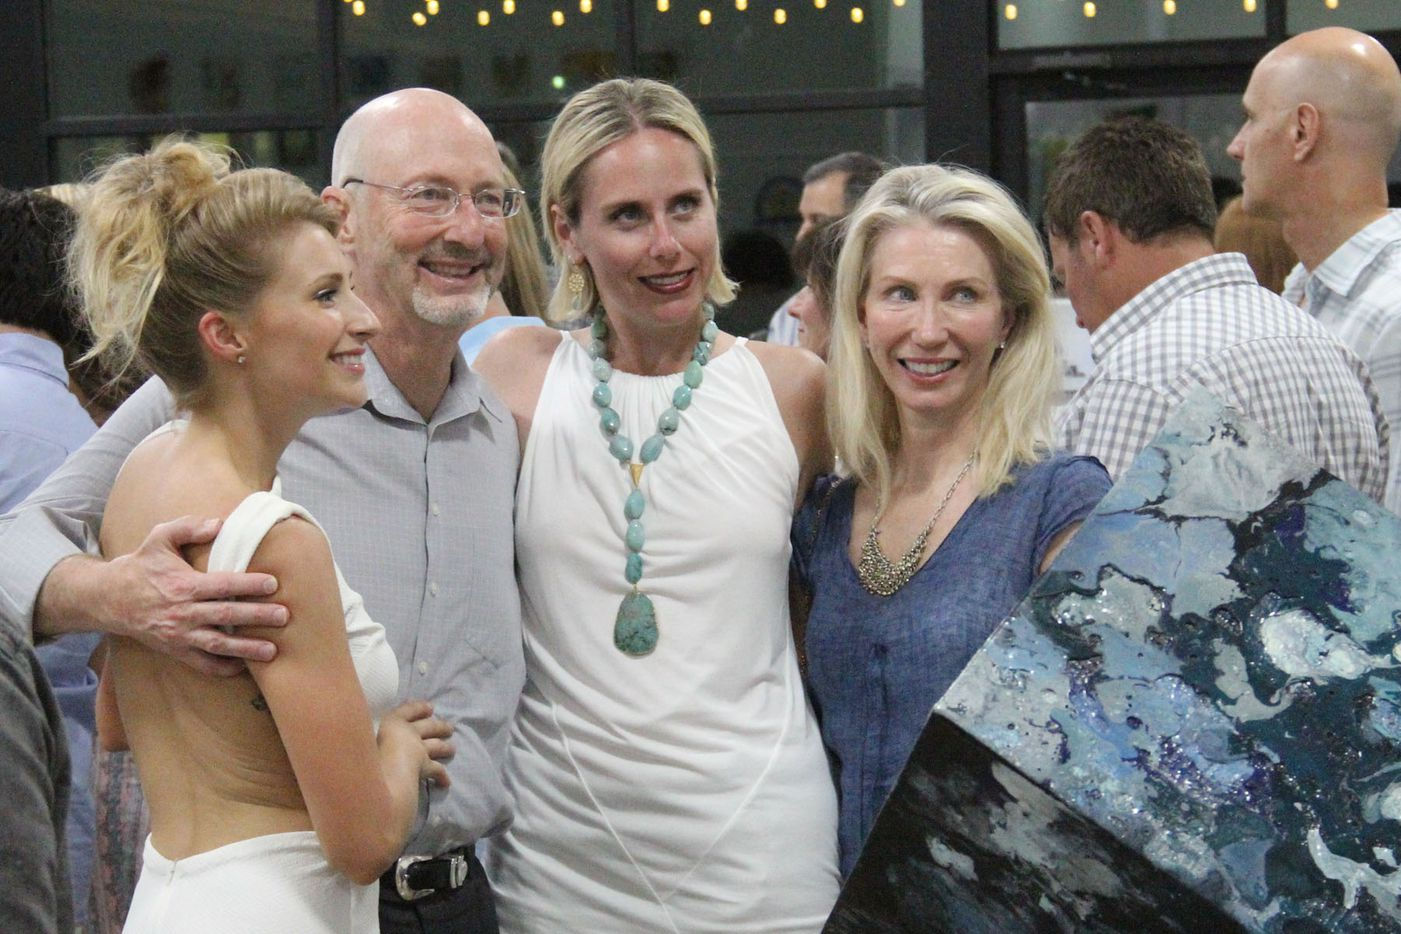 Artist Toni Martin posed with friends at the Random Art Gallery opening reception of her art exhibit.